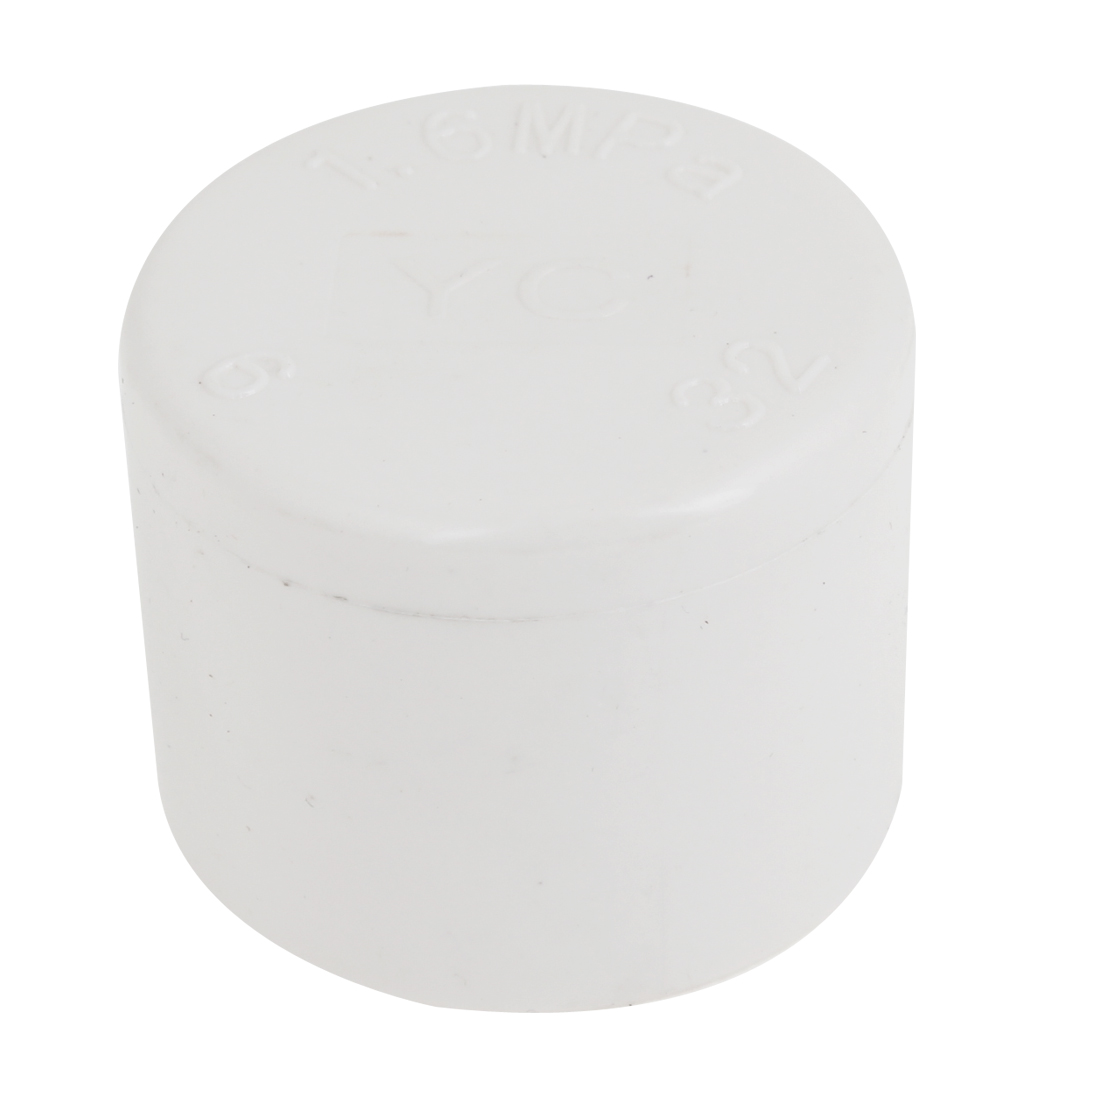 32mm Inner Diameter White PVC Hose Tube End Fitting Adapter Cap